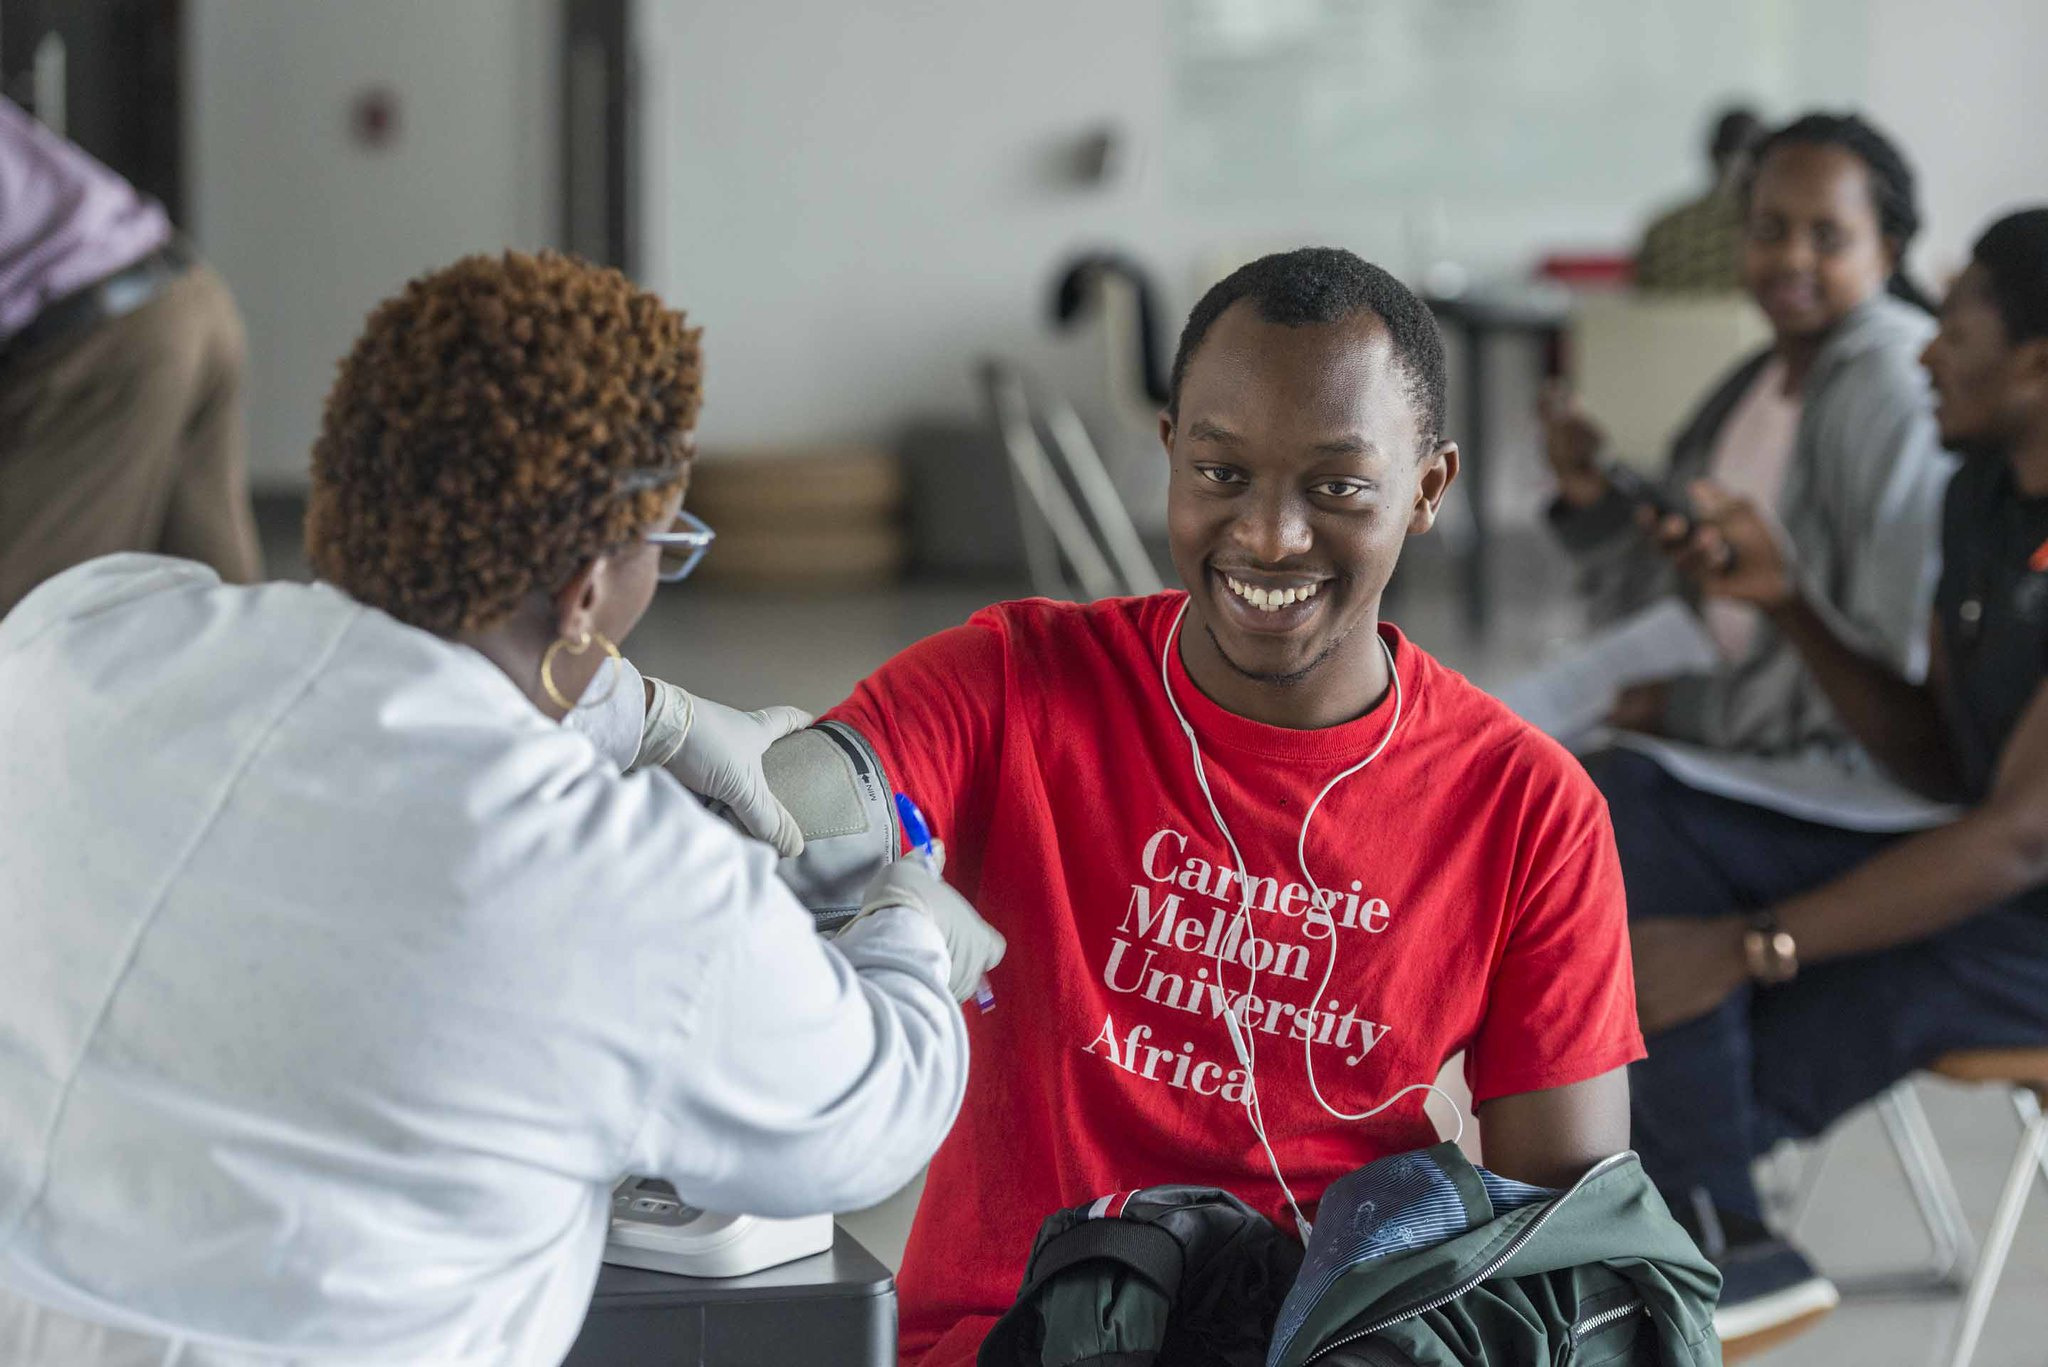 MCF Scholar donates blood